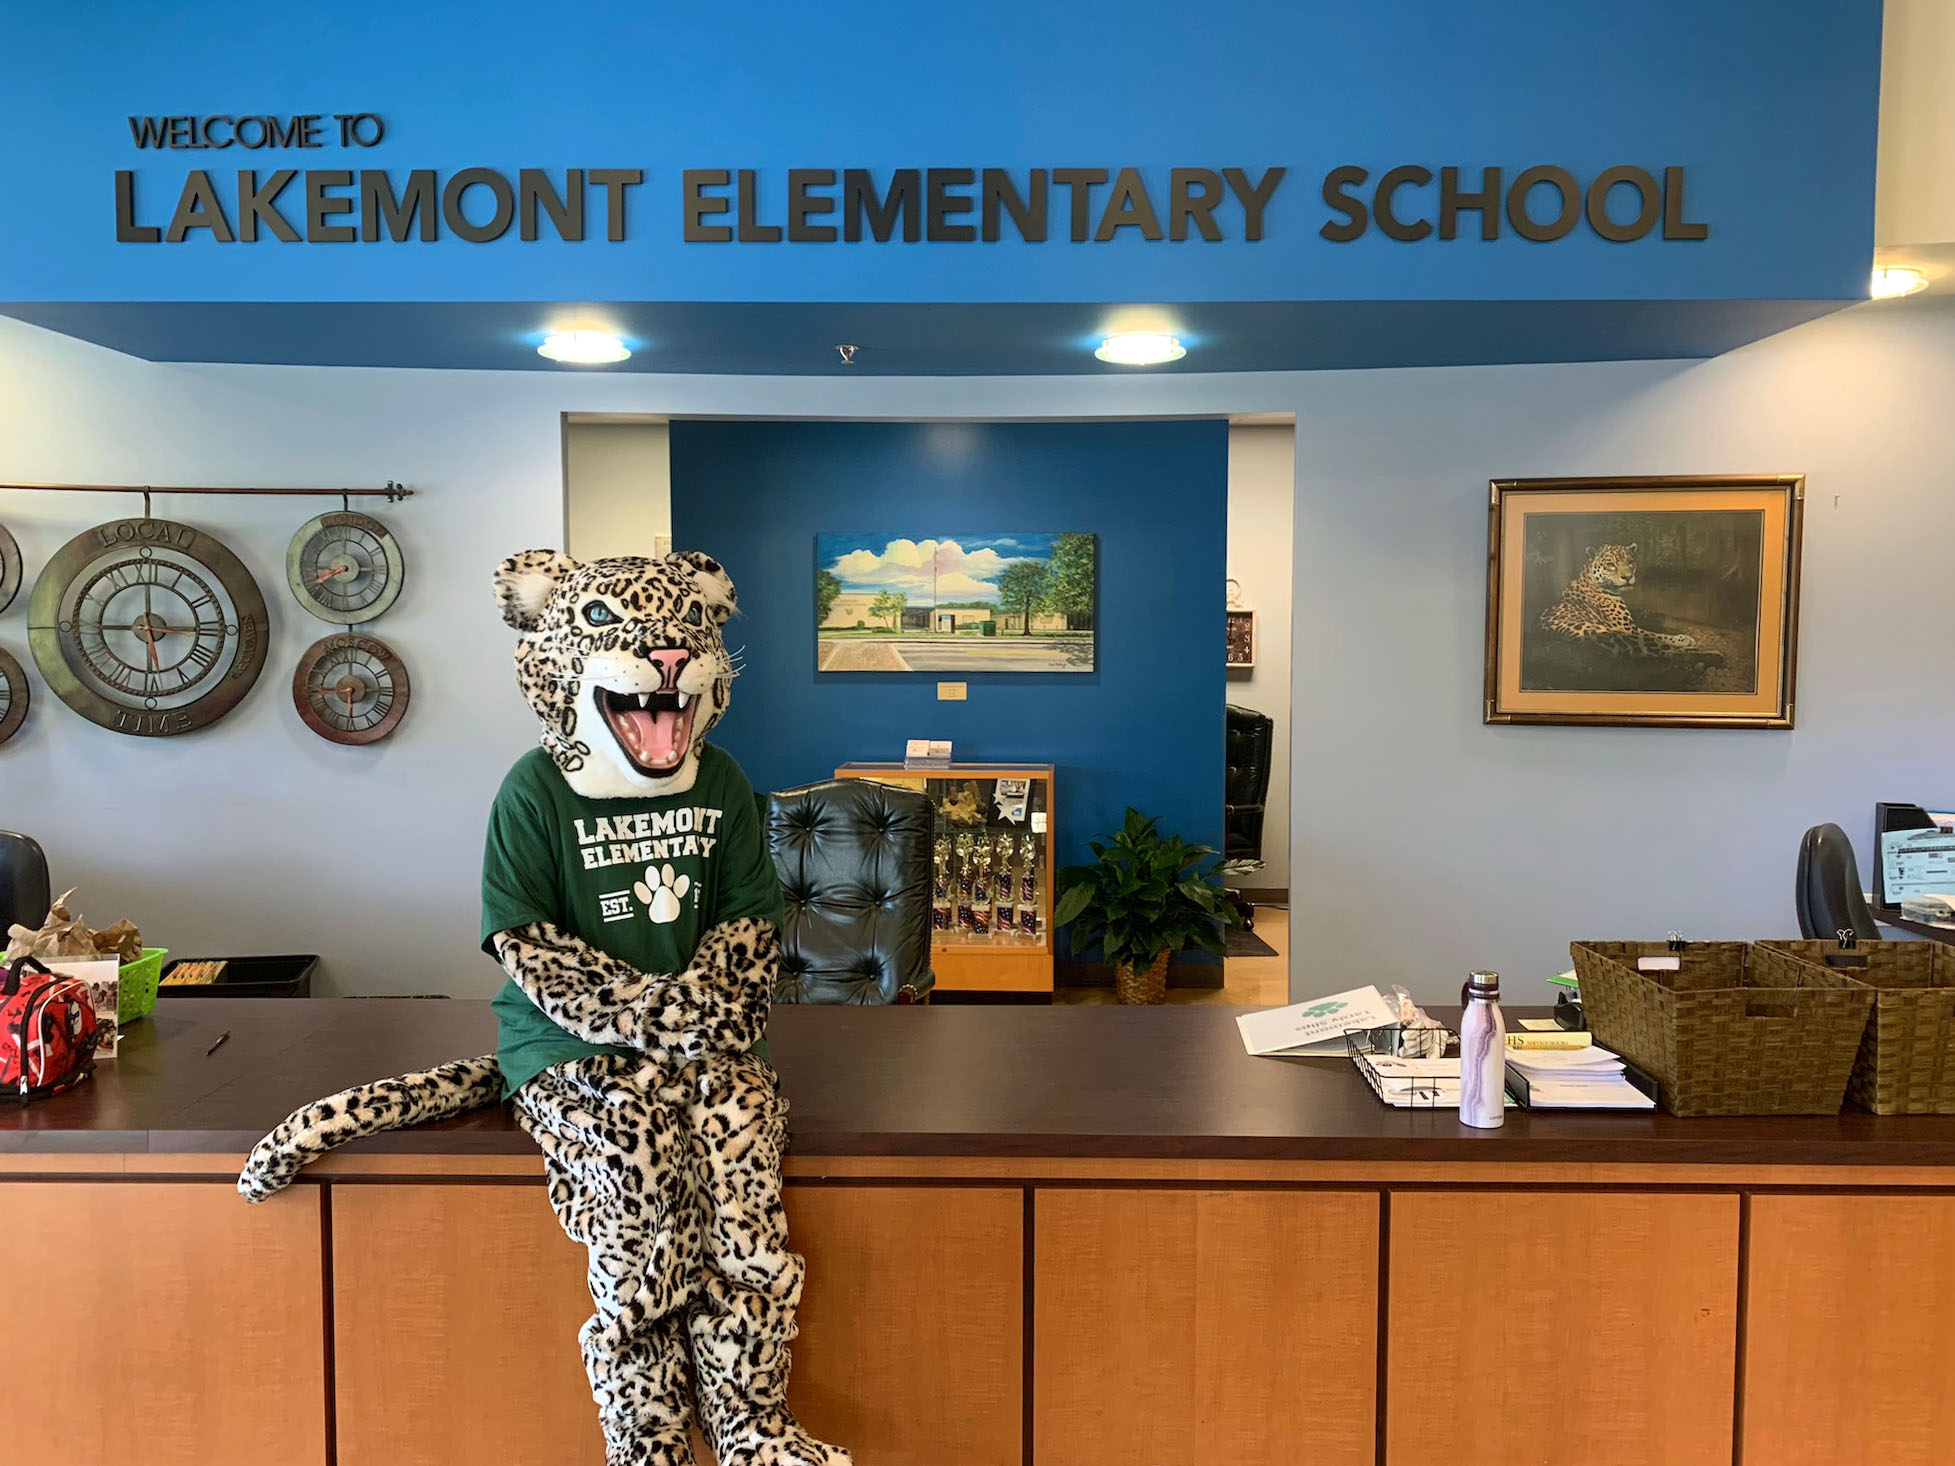 Leo the Leopard mascot sits at the Lakemont Elementary School front desk.